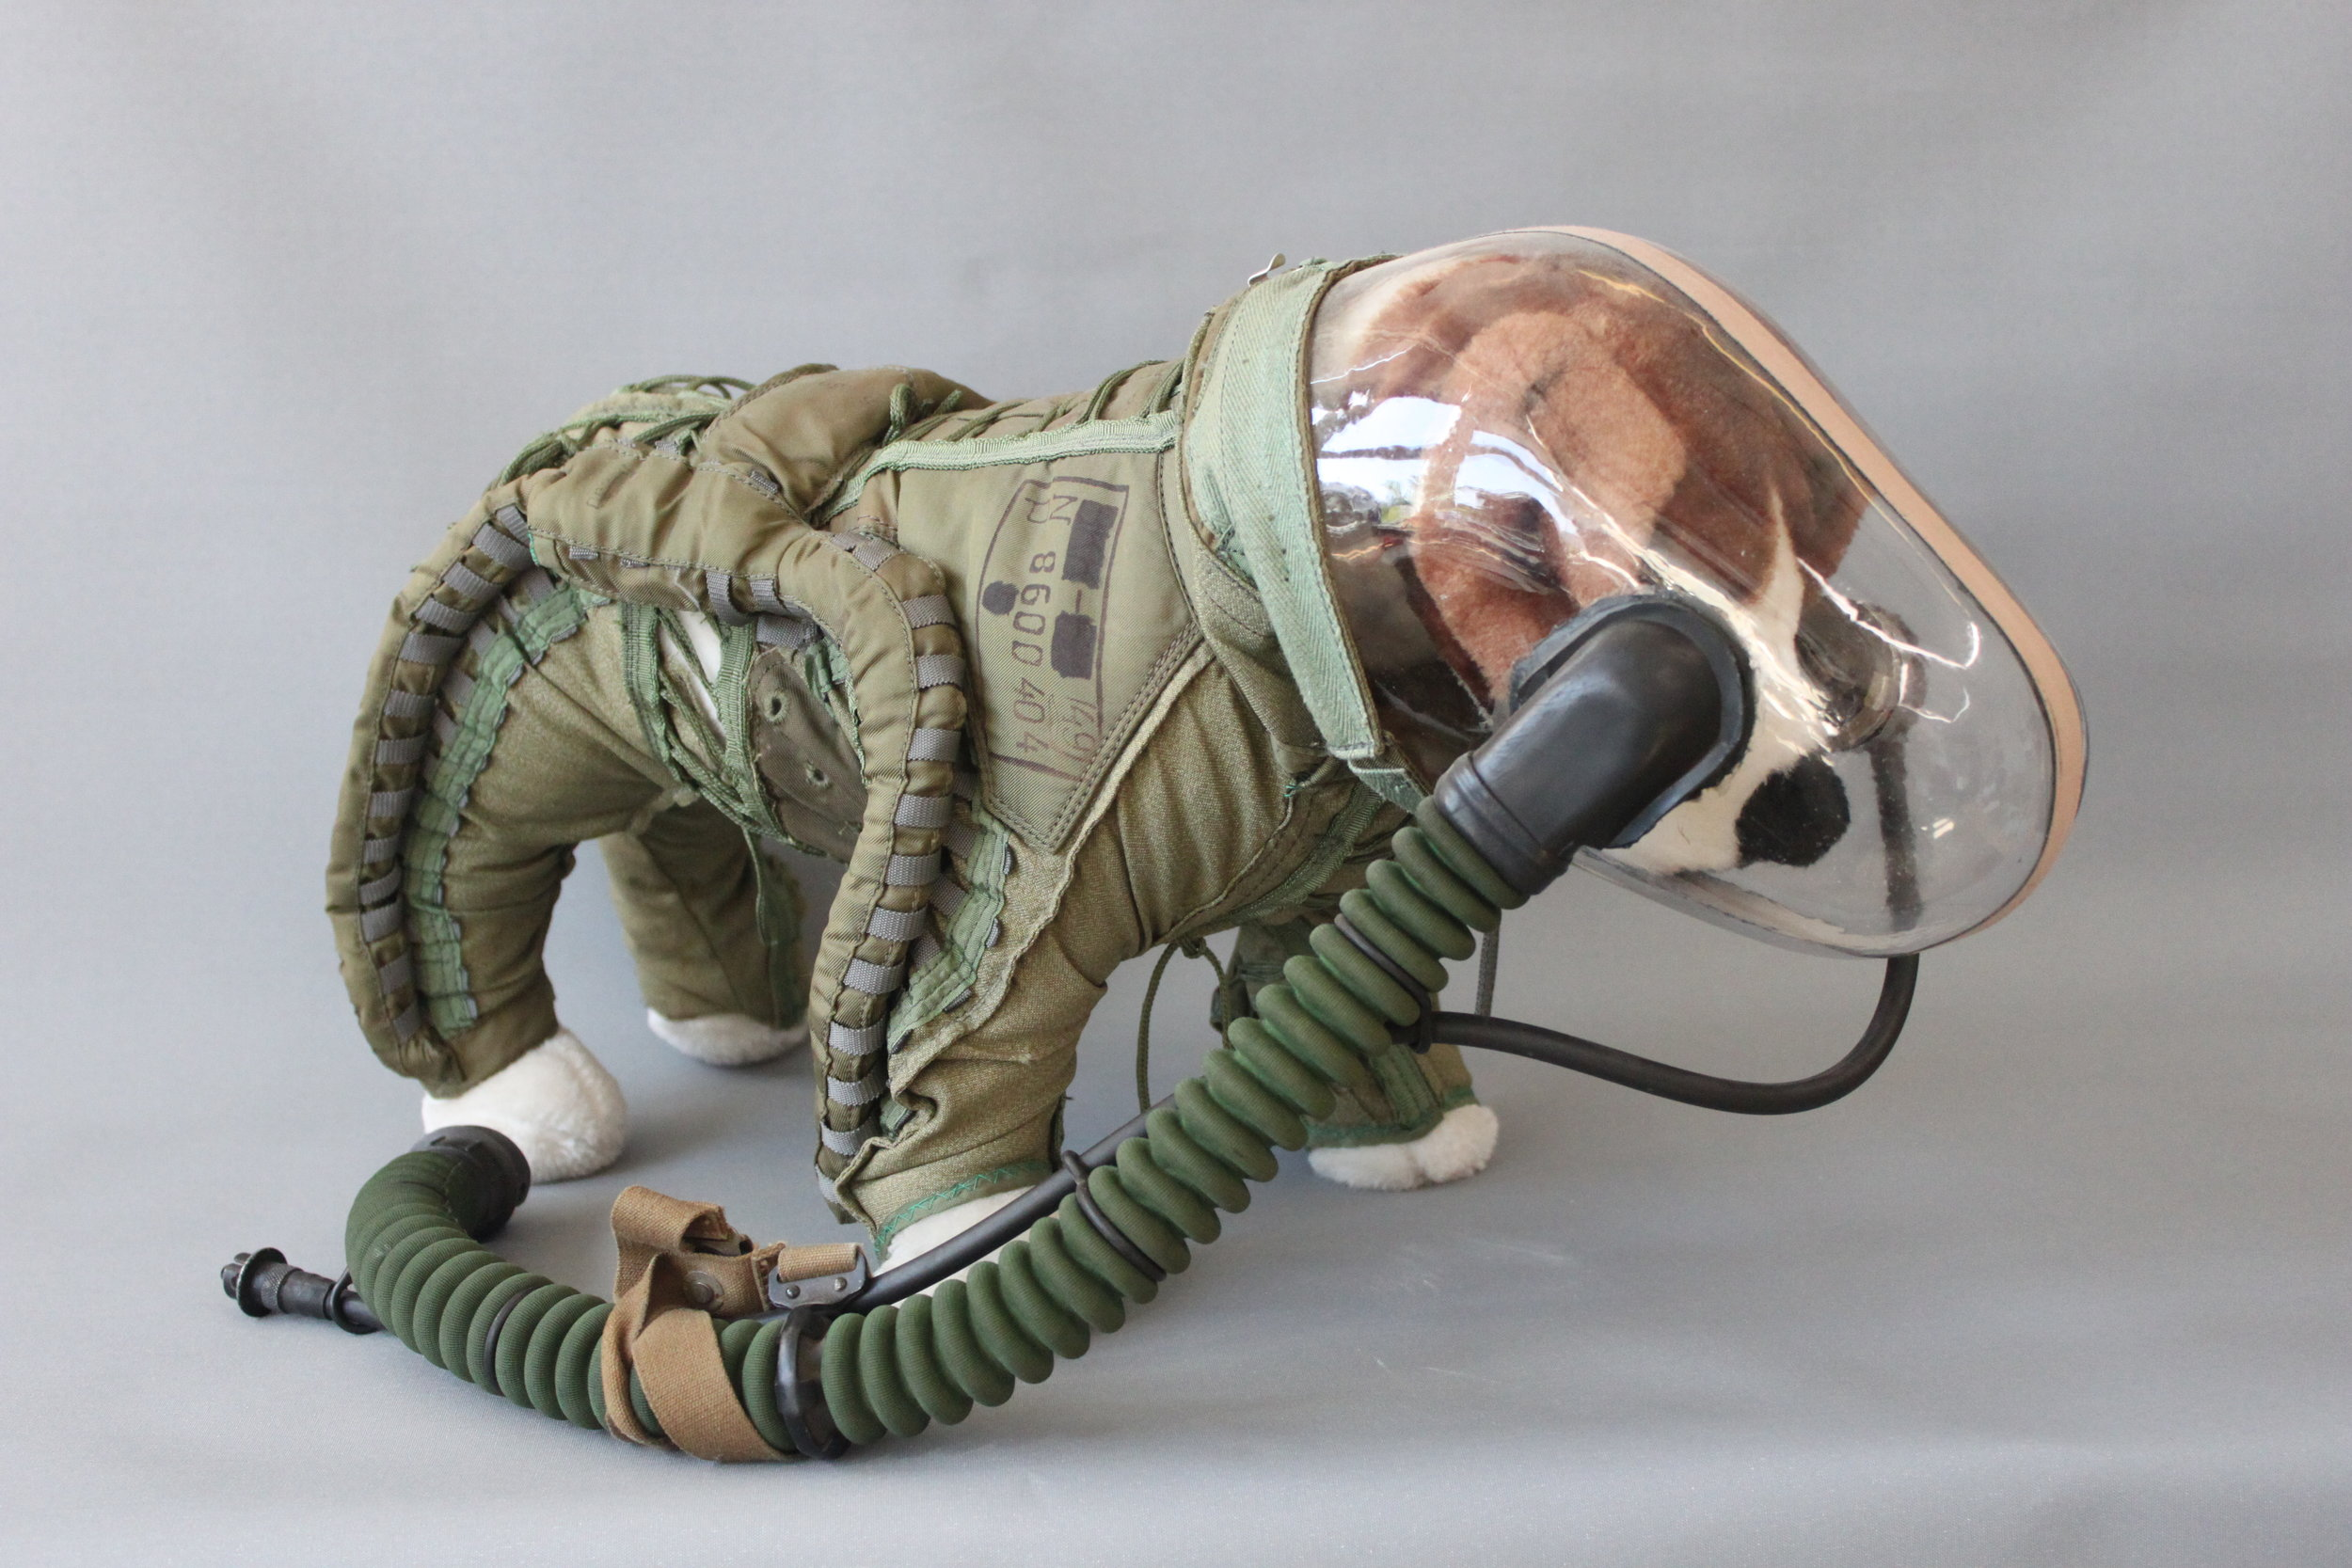 Reproduction of Soviet Canine Pressure Garment